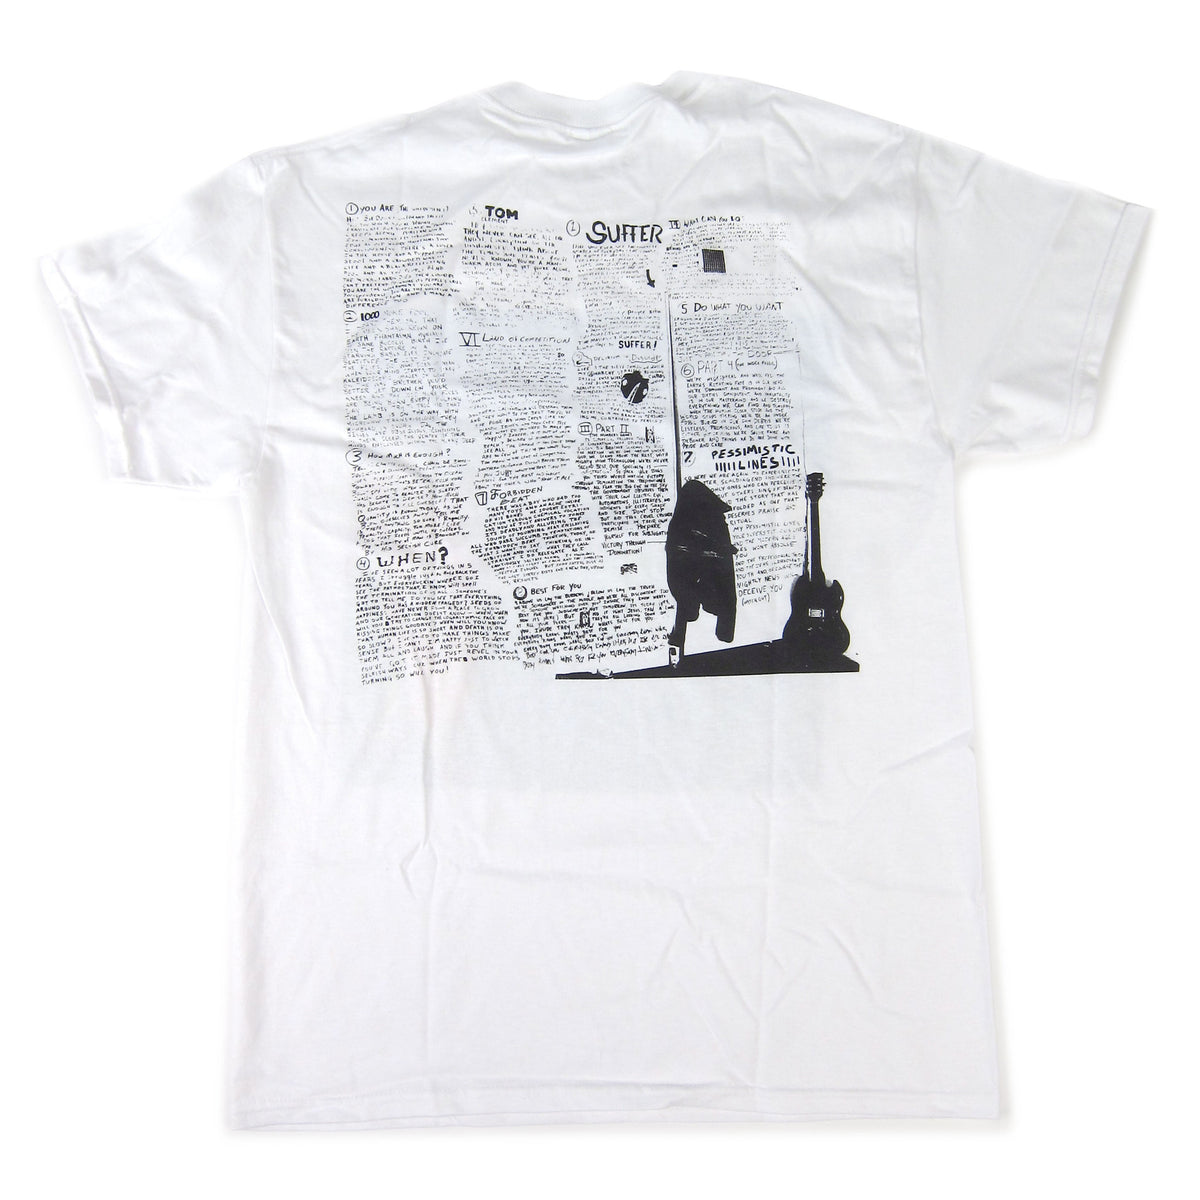 Bad Religion: Suffer Cover Shirt - White